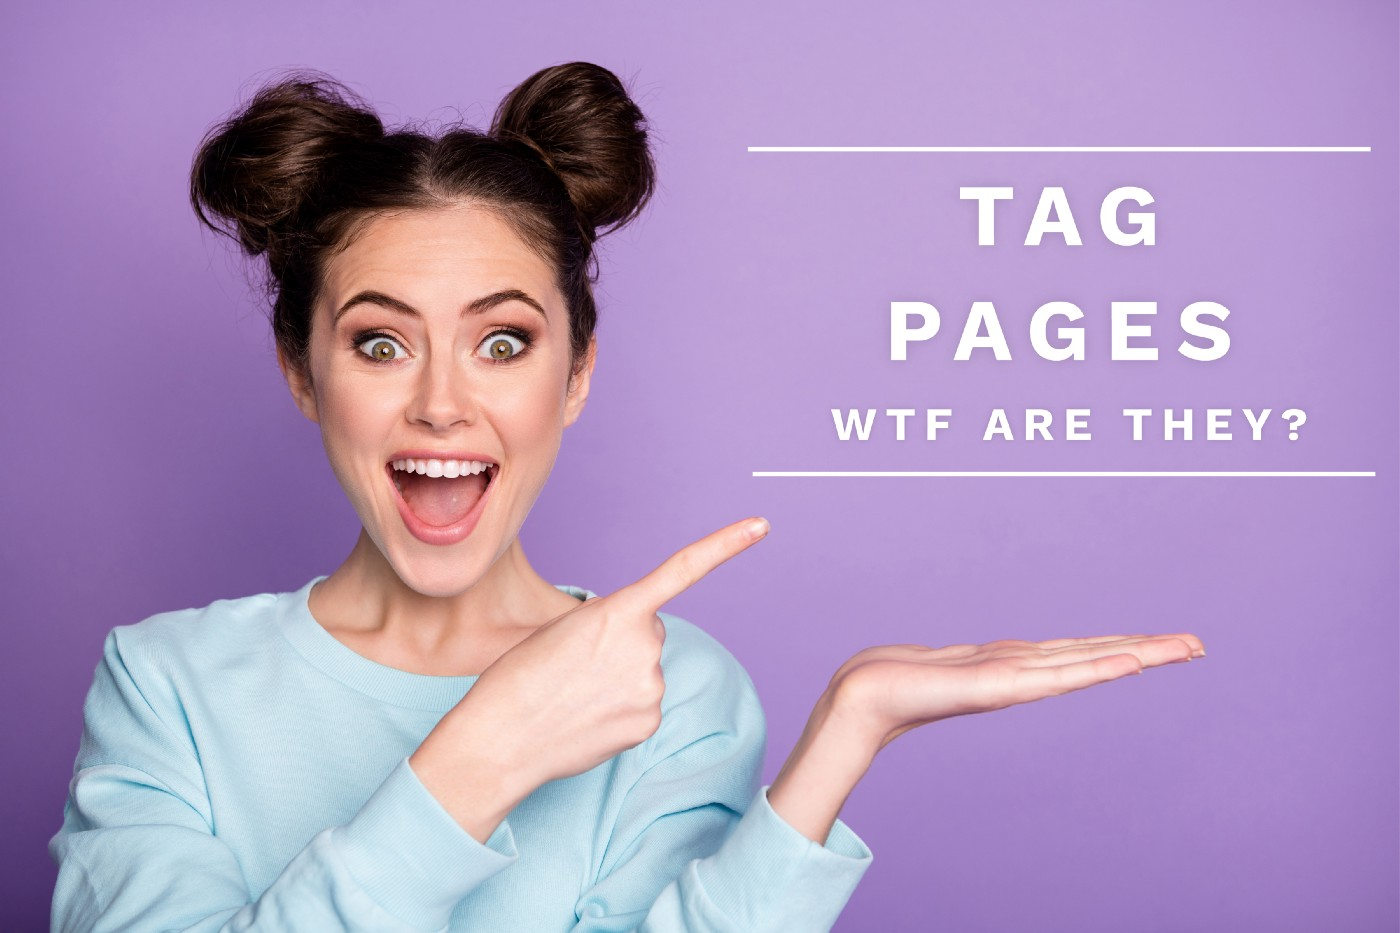 """Excited woman pointing to a sign that says, """"TAG PAGES, WTF ARE THEY?"""""""